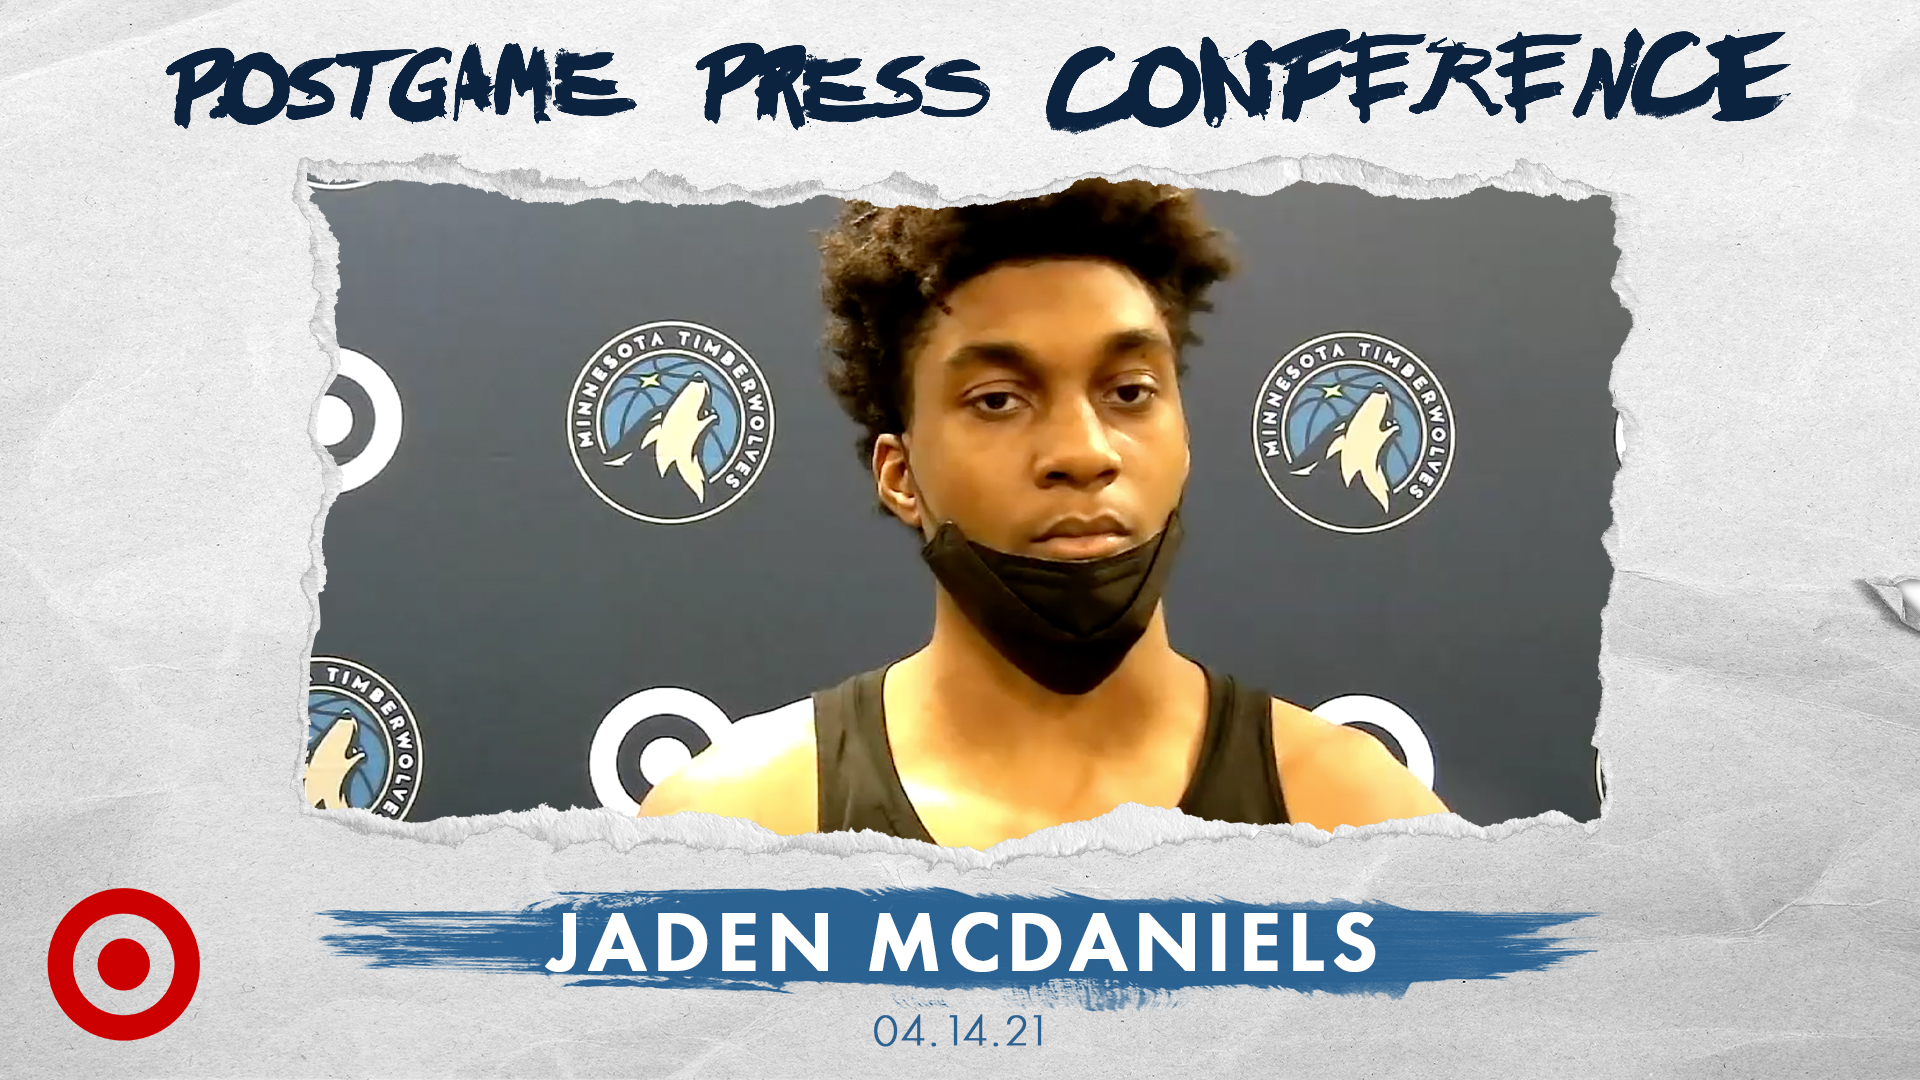 Jaden McDaniels Postgame Press Conference - April 14, 2021